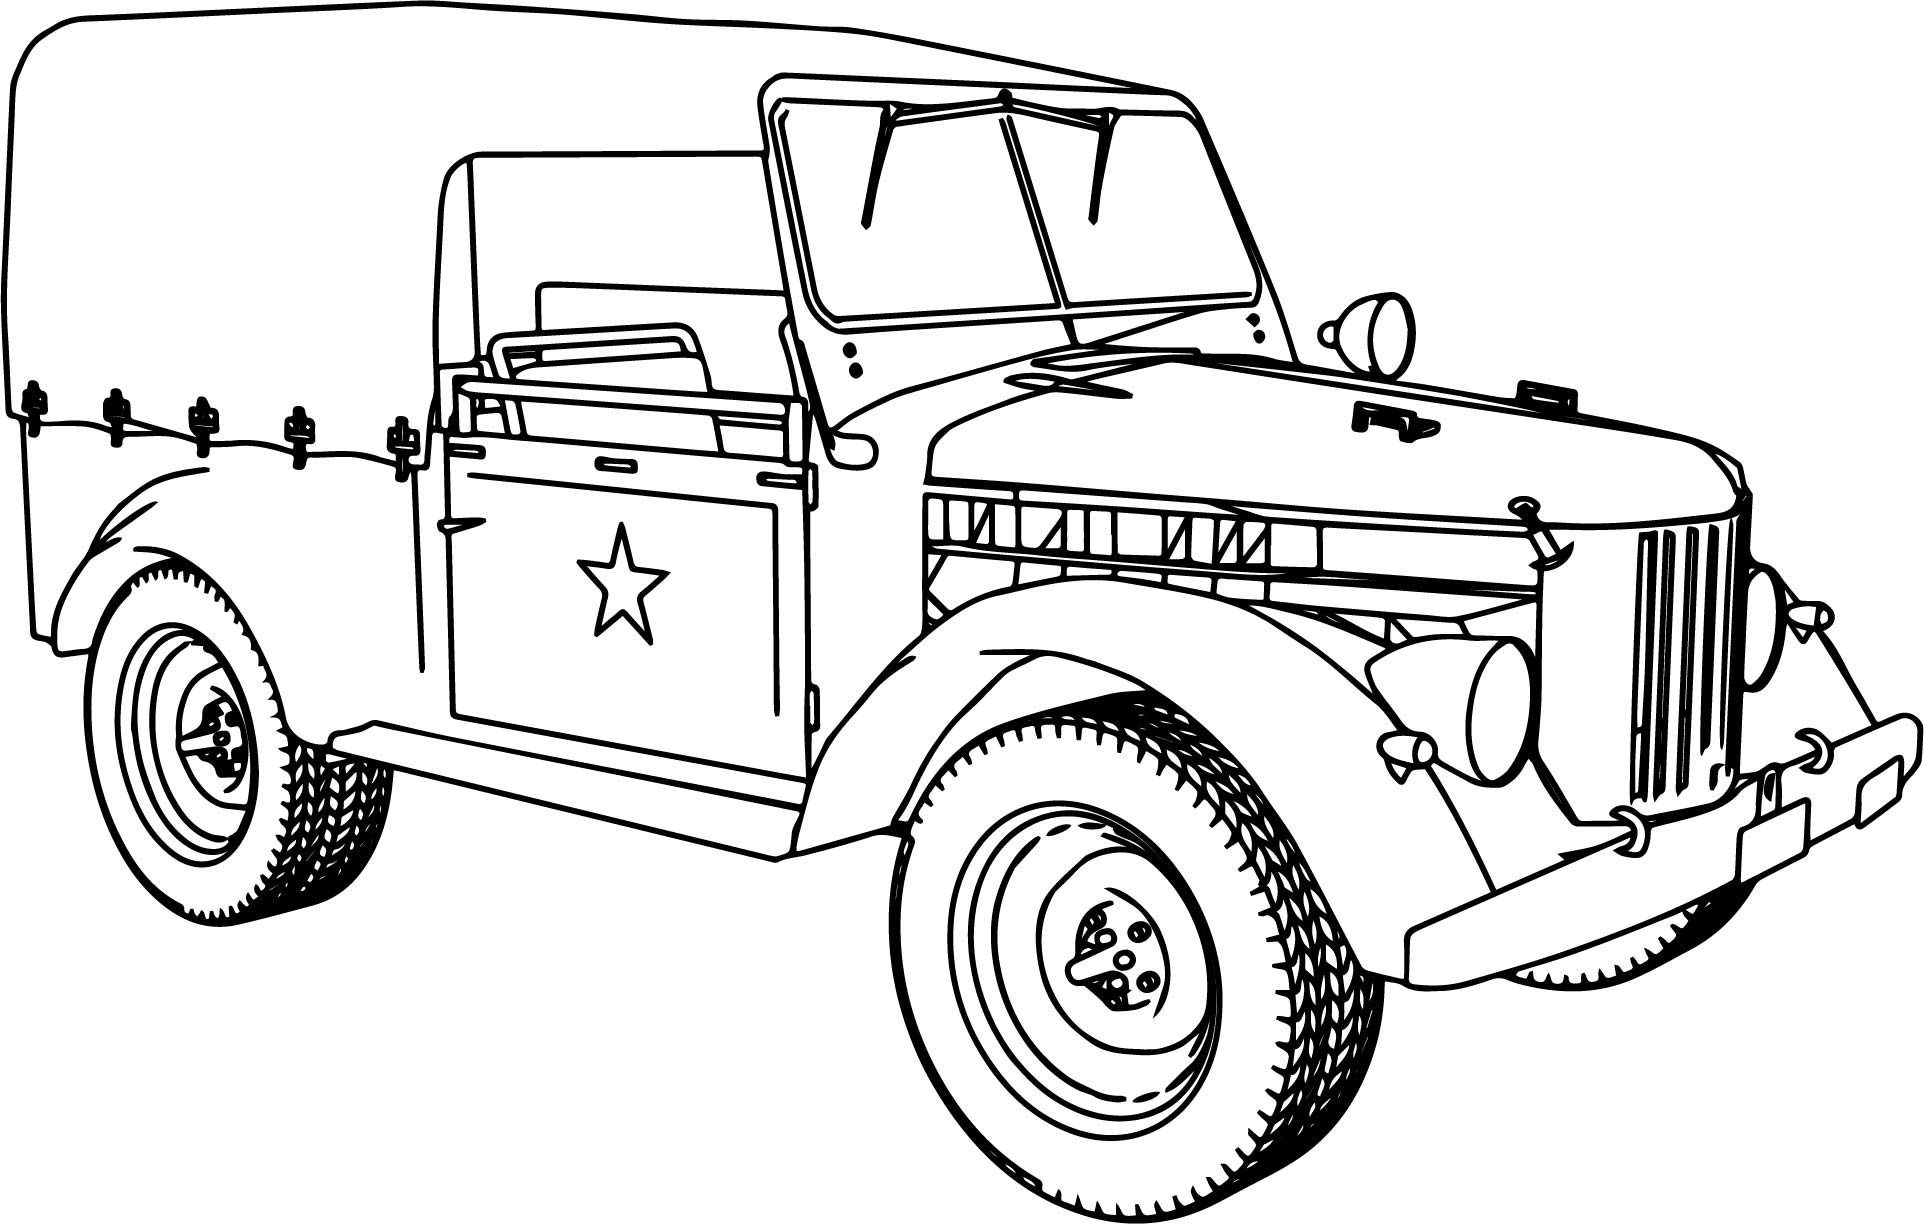 Car Coloring Pages Games : Cool cars coloring pages games best free